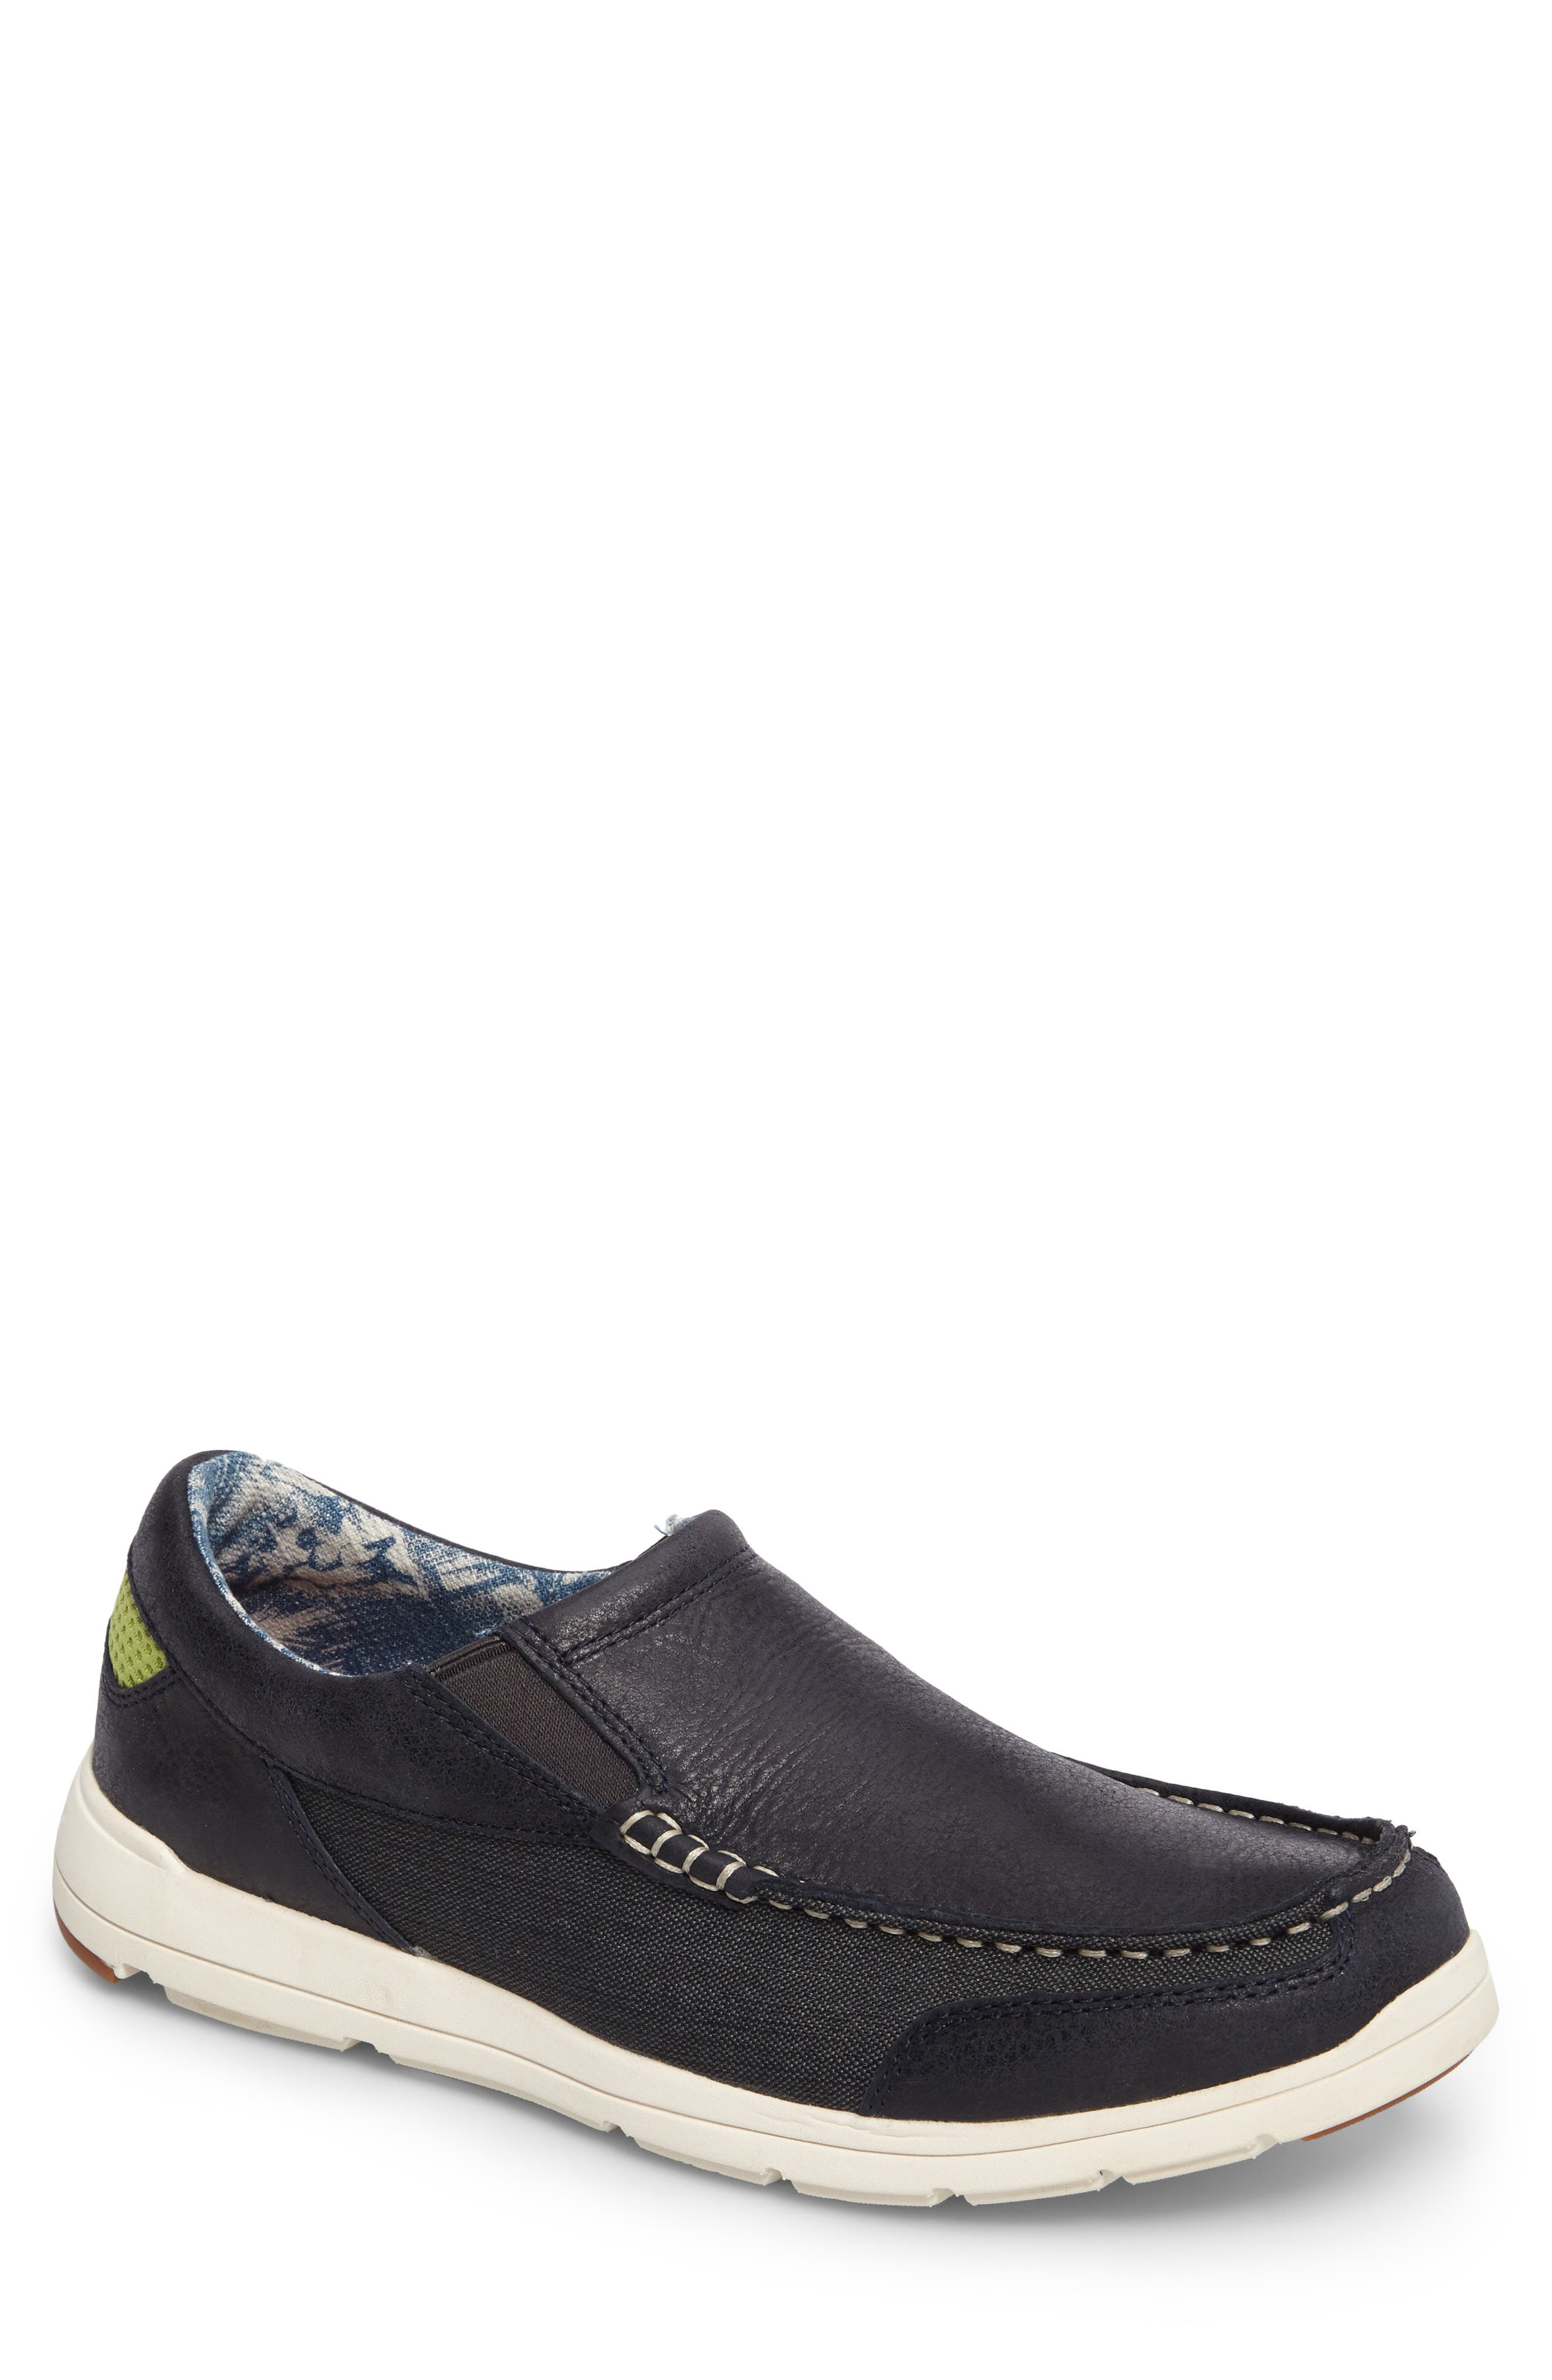 Paradise Around Slip-On,                         Main,                         color, Navy Leather/ Canvas